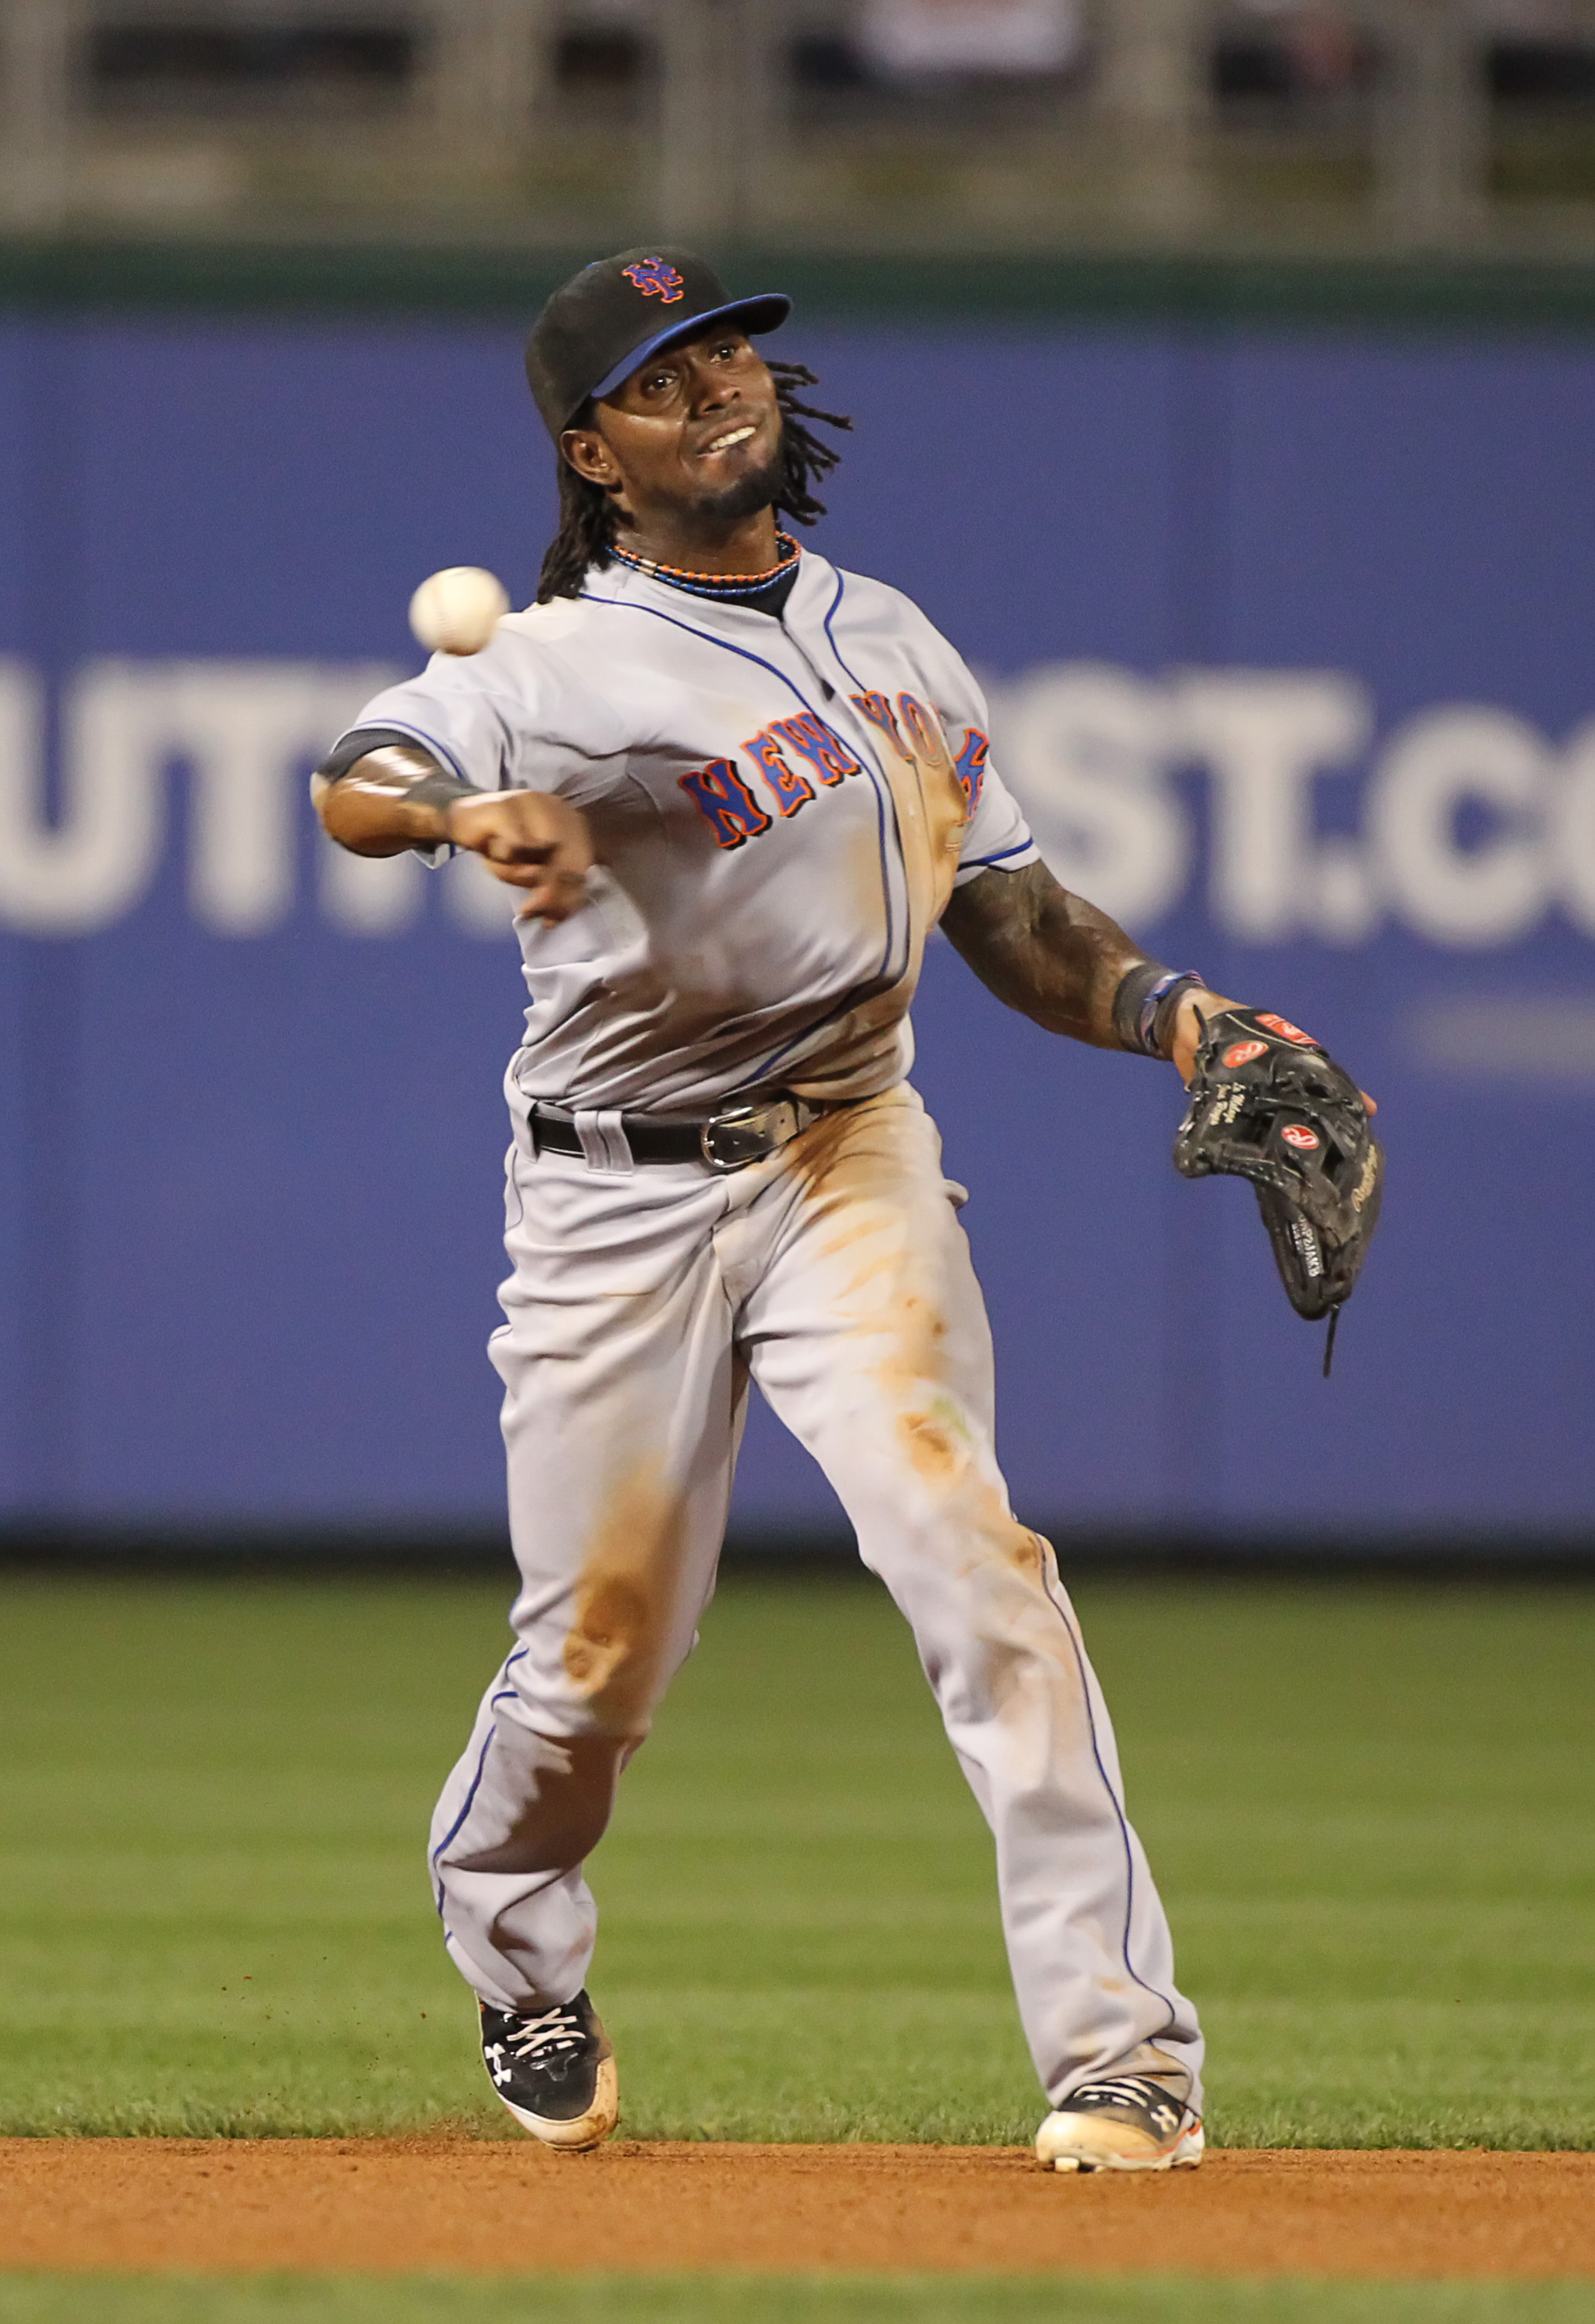 PHILADELPHIA - SEPTEMBER 25: Shortstop Jose Reyes #7 of the New York Mets throws to first base during a game against the Philadelphia Phillies at Citizens Bank Park on September 25, 2010 in Philadelphia, Pennsylvania. The Mets won 5-2. (Photo by Hunter Ma